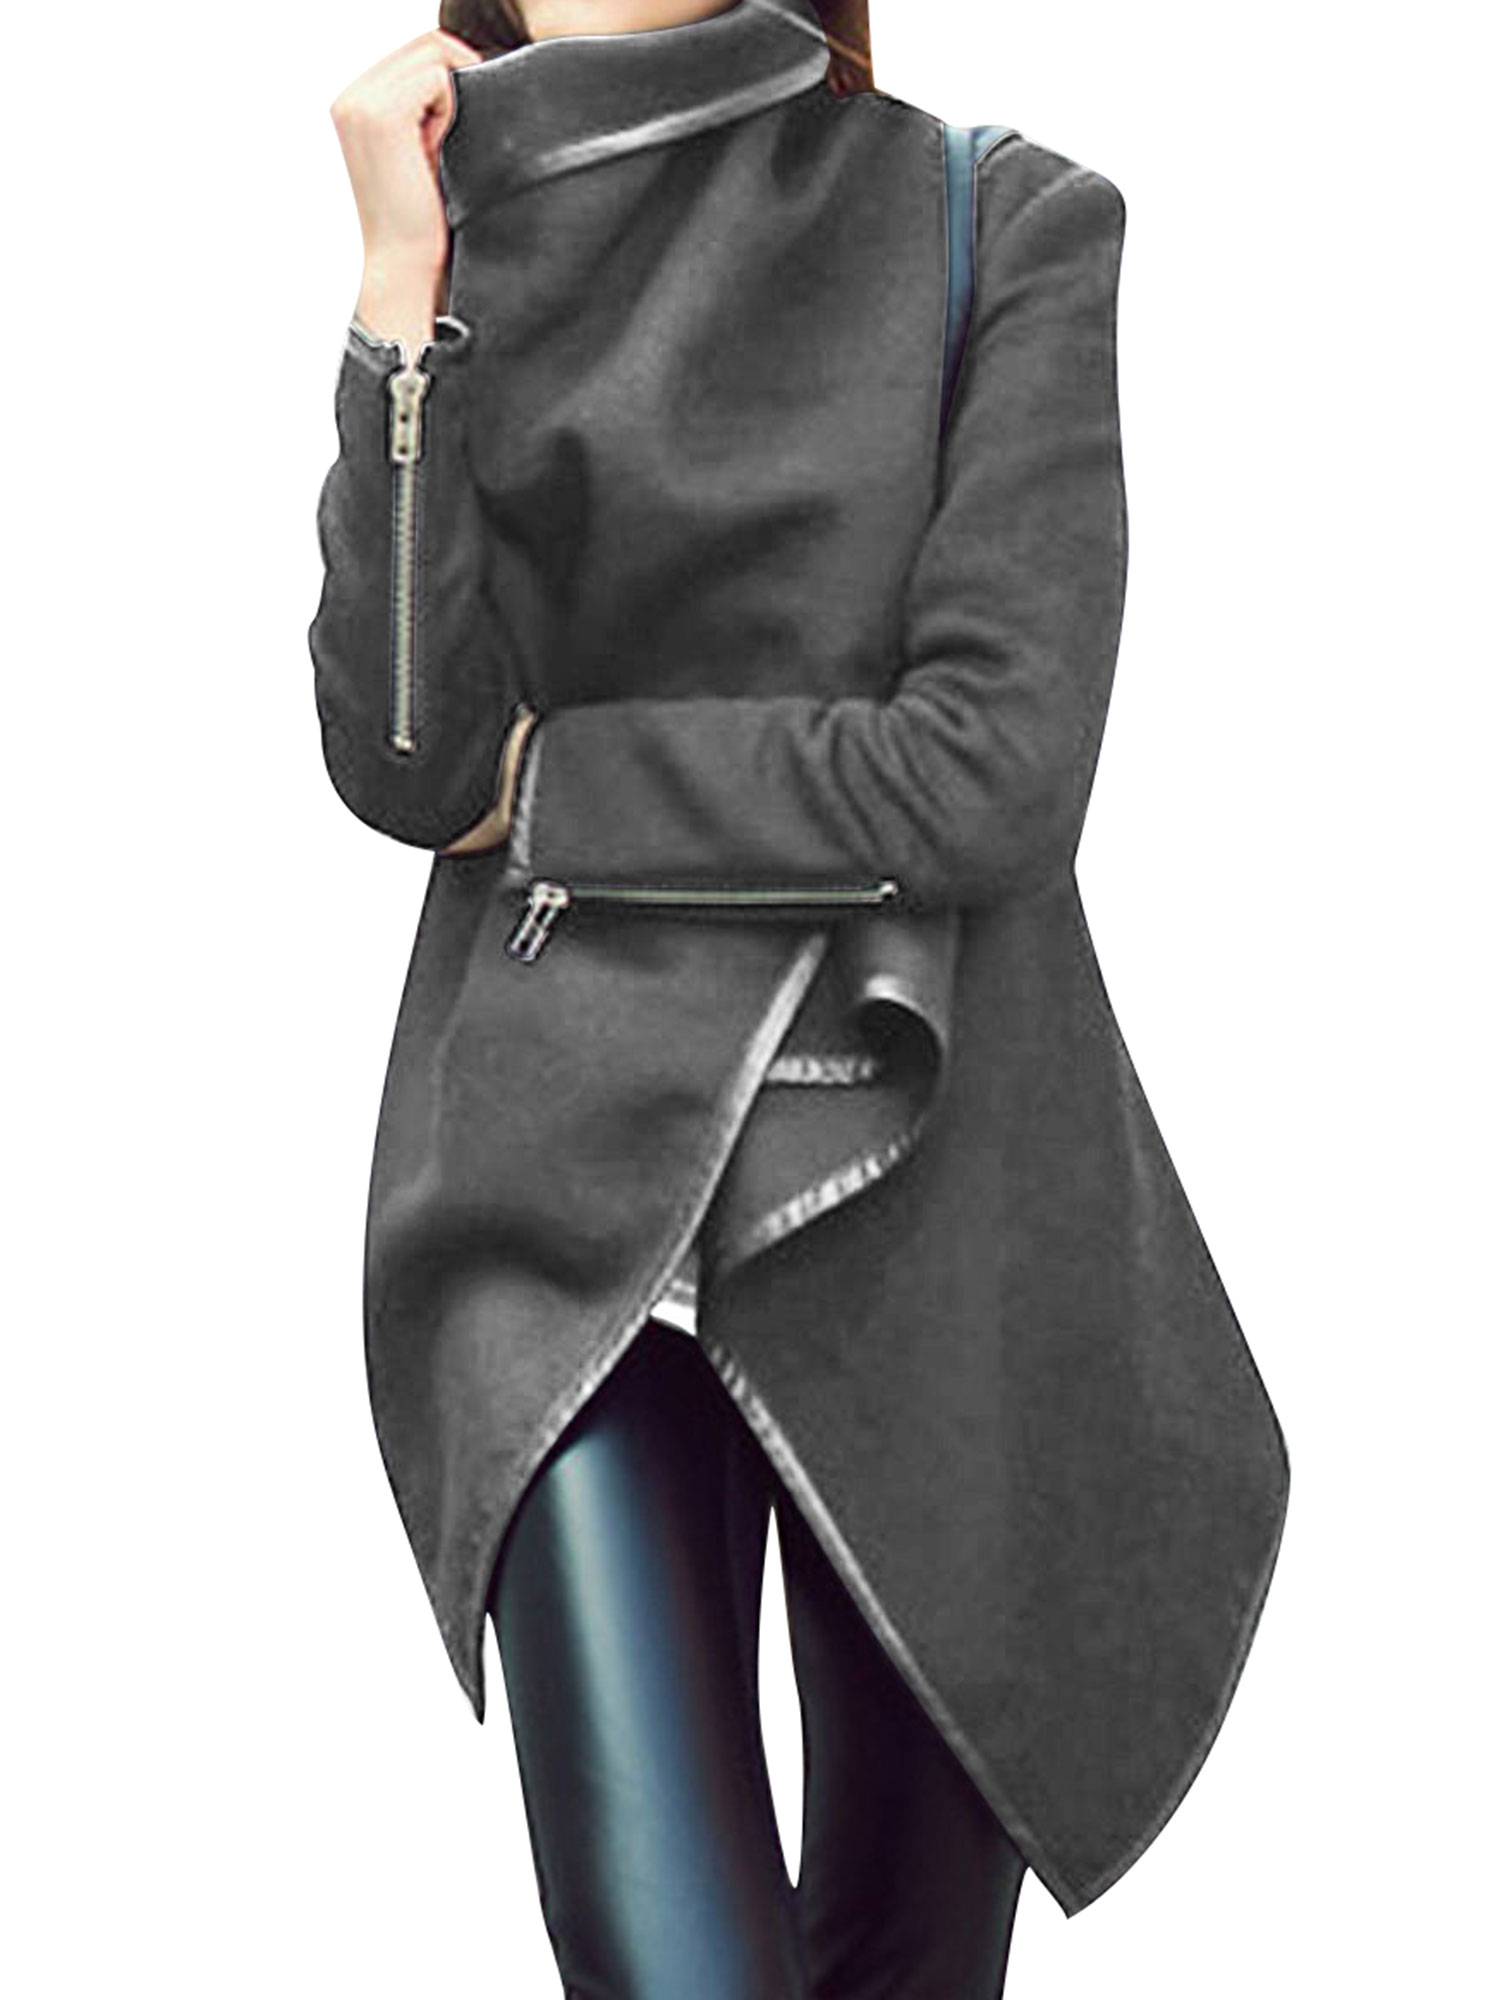 LMart Women Oversized Solid Color Wrap Trench Coat Jacket Outwear